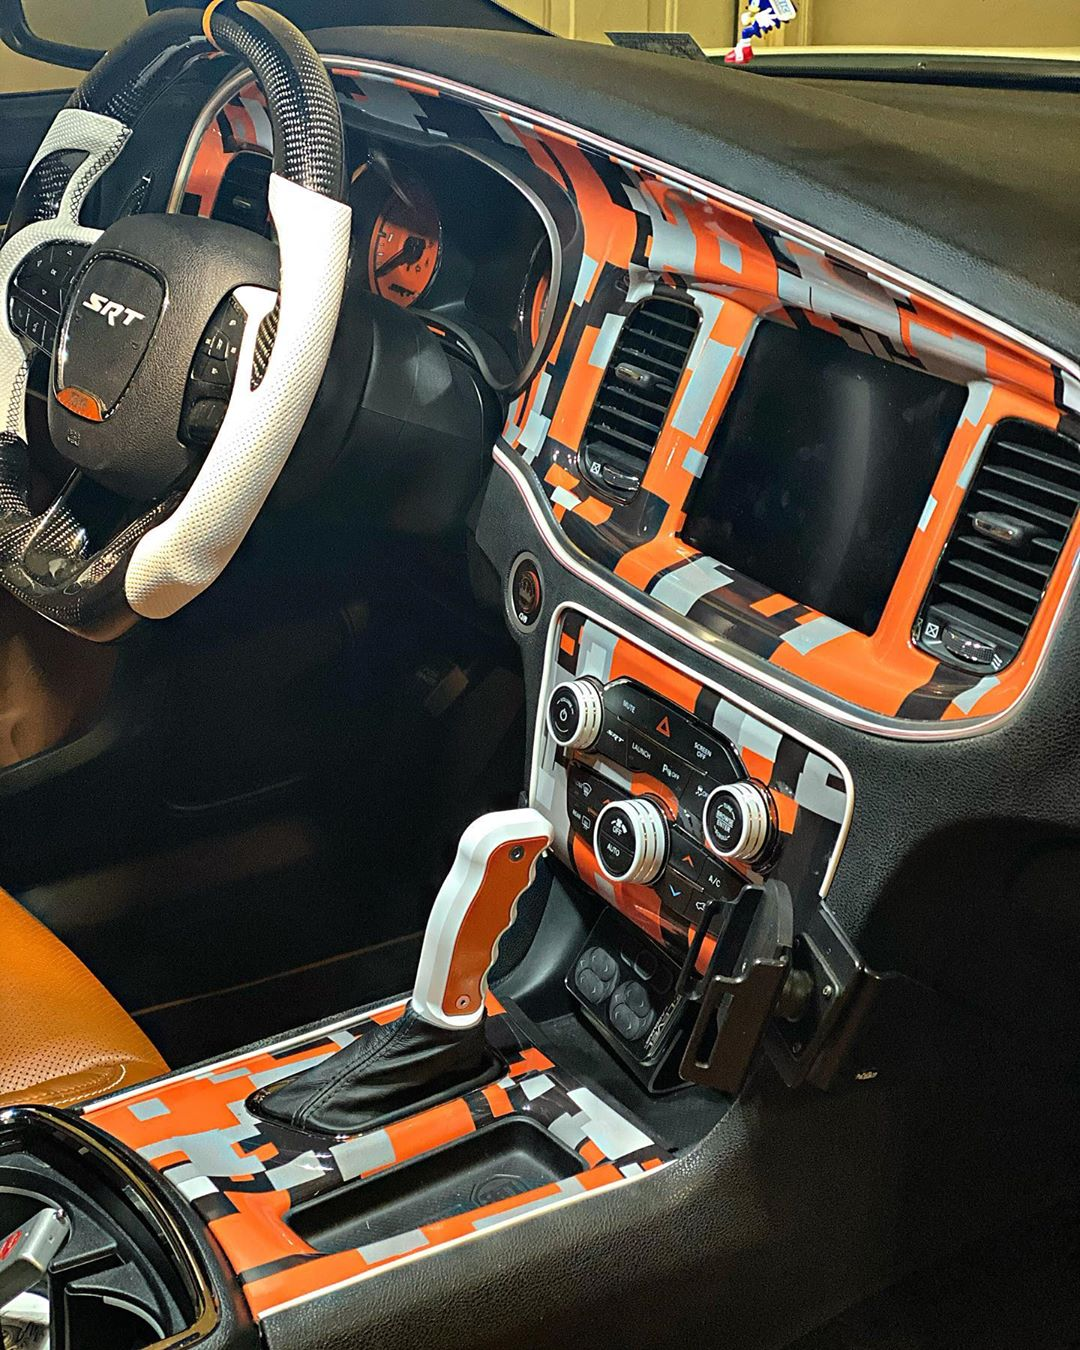 Dodge Demon Dashboard : dodge, demon, dashboard, Dodge, Charger, Hellcat, Archangel, Demon, Front,